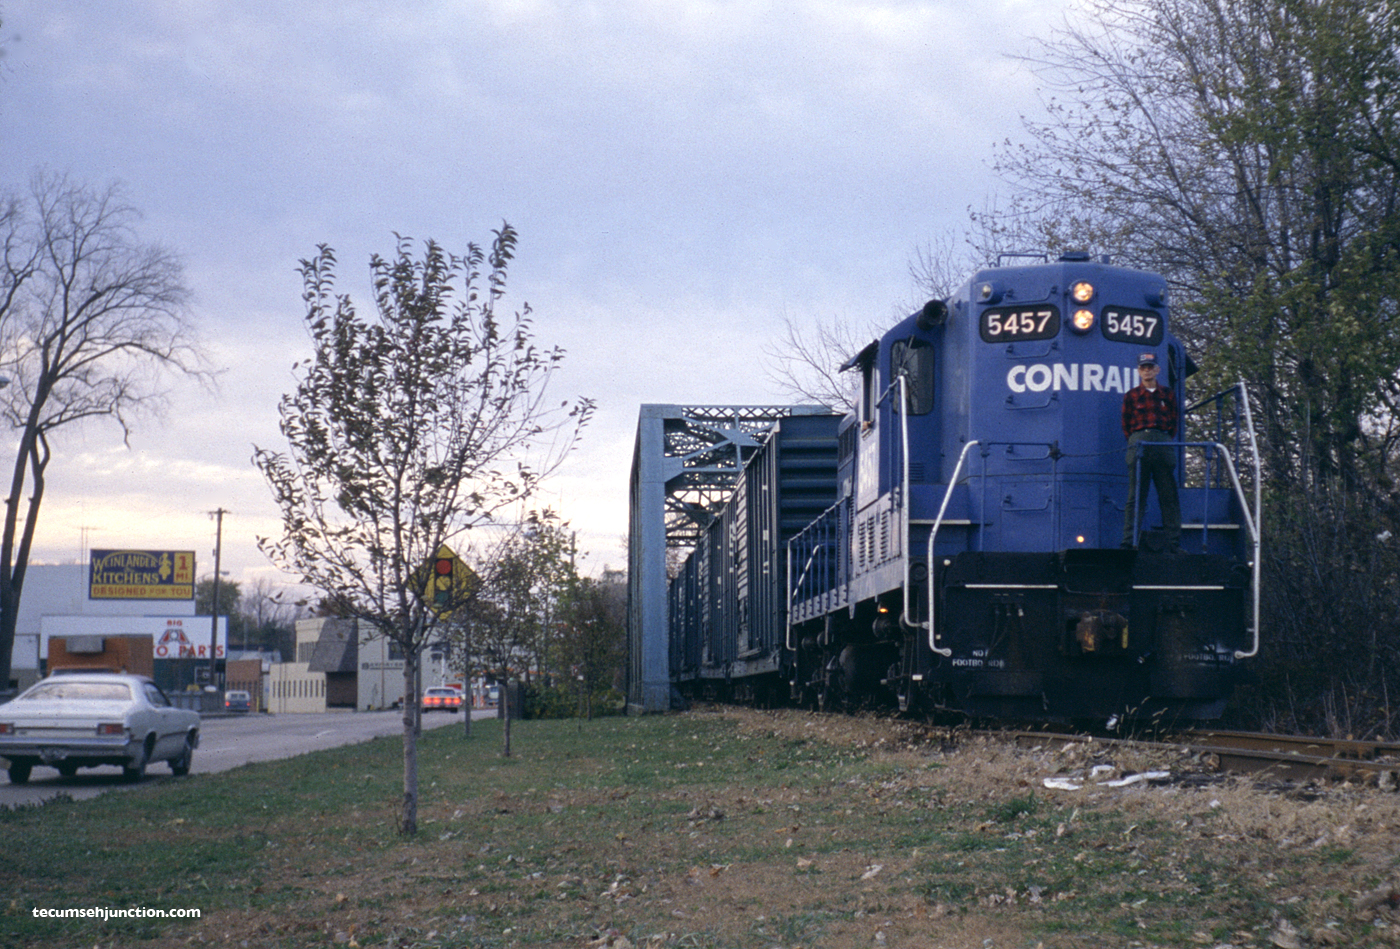 Conrail engineer Dale Stultz poses on Conrail GP-8 #5457 at Blissfield, Michigan on November 3, 1980.